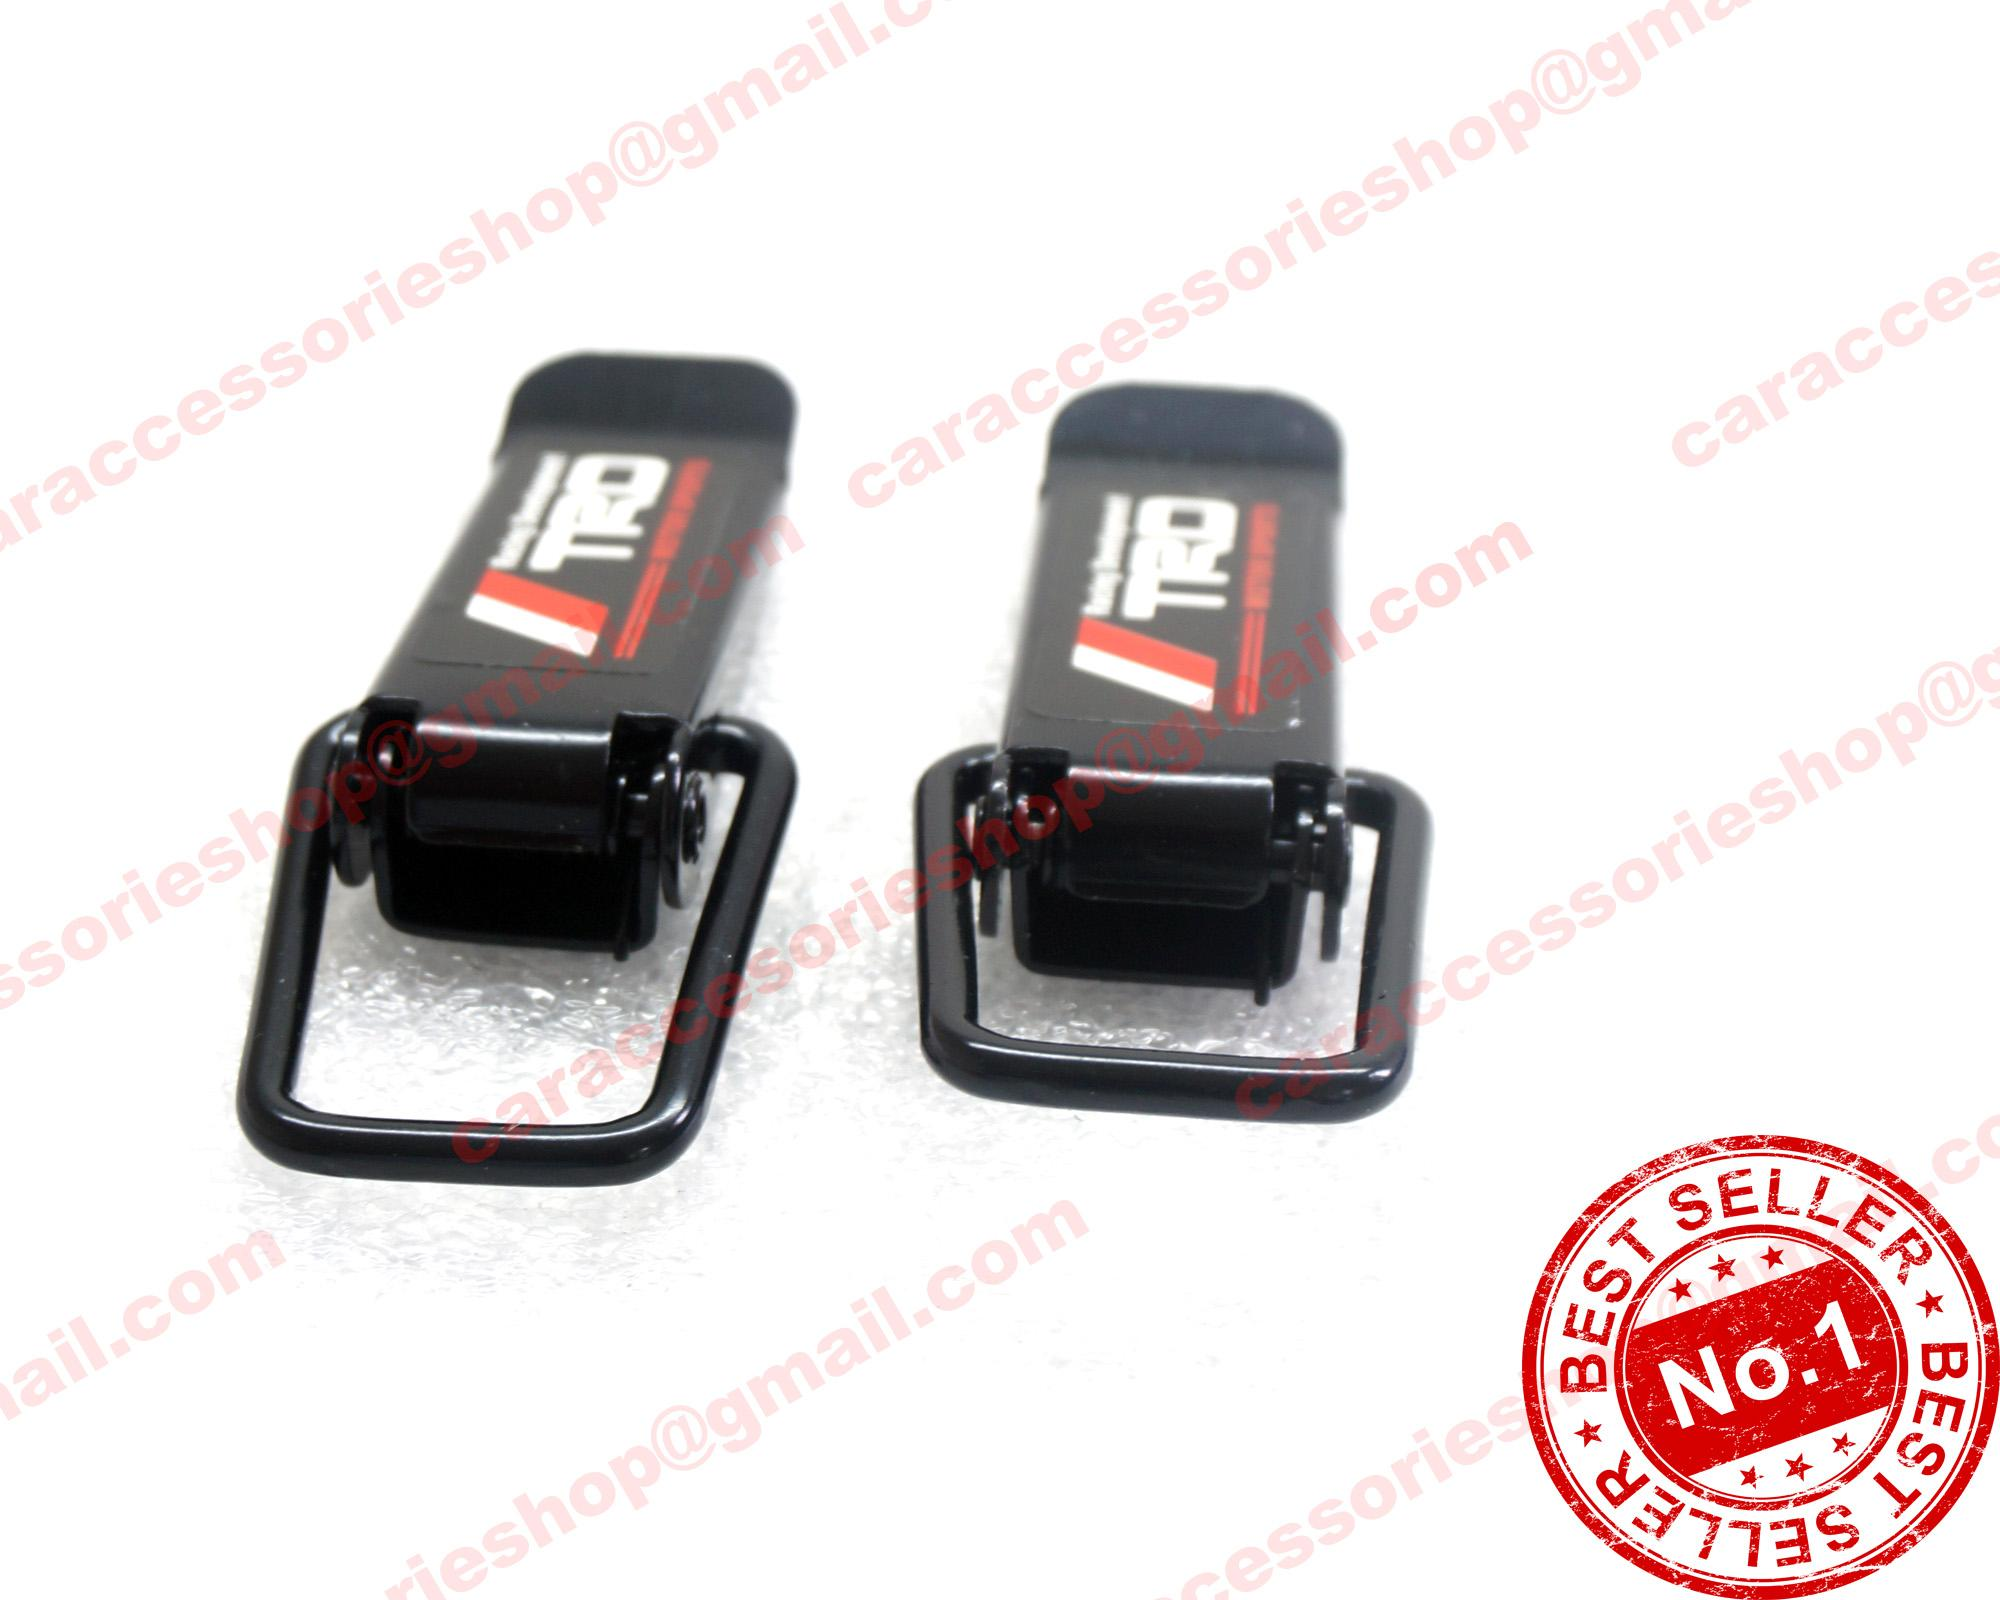 Trd Bumper Clip For Toyota Cars Universal Black By Car Accessories Shop.